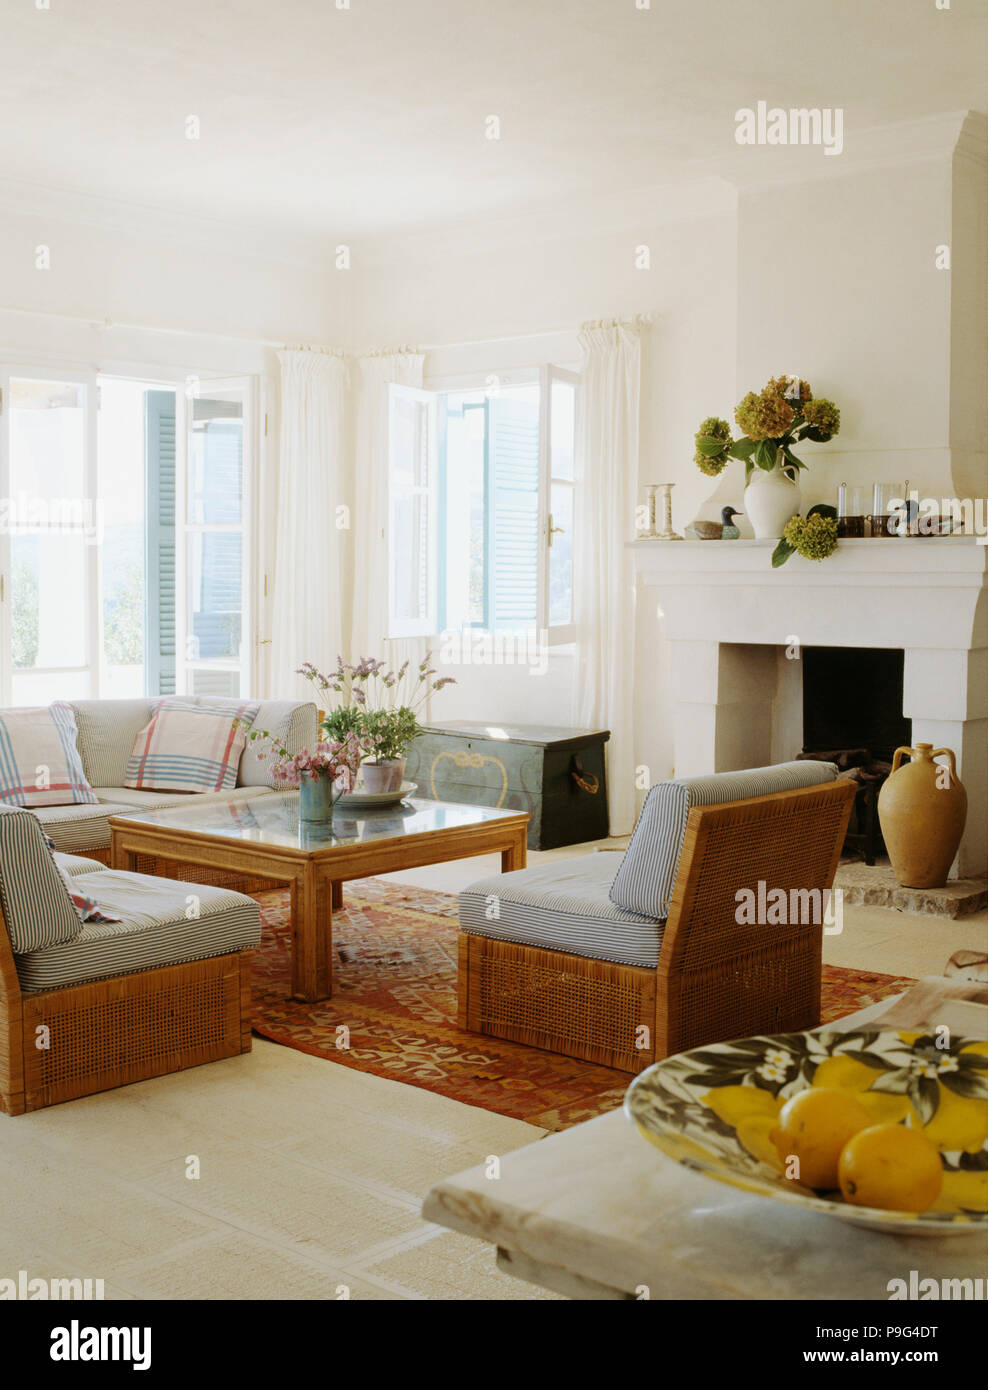 Grey Blue Cushions On Wicker Chairs In White Coastal Living